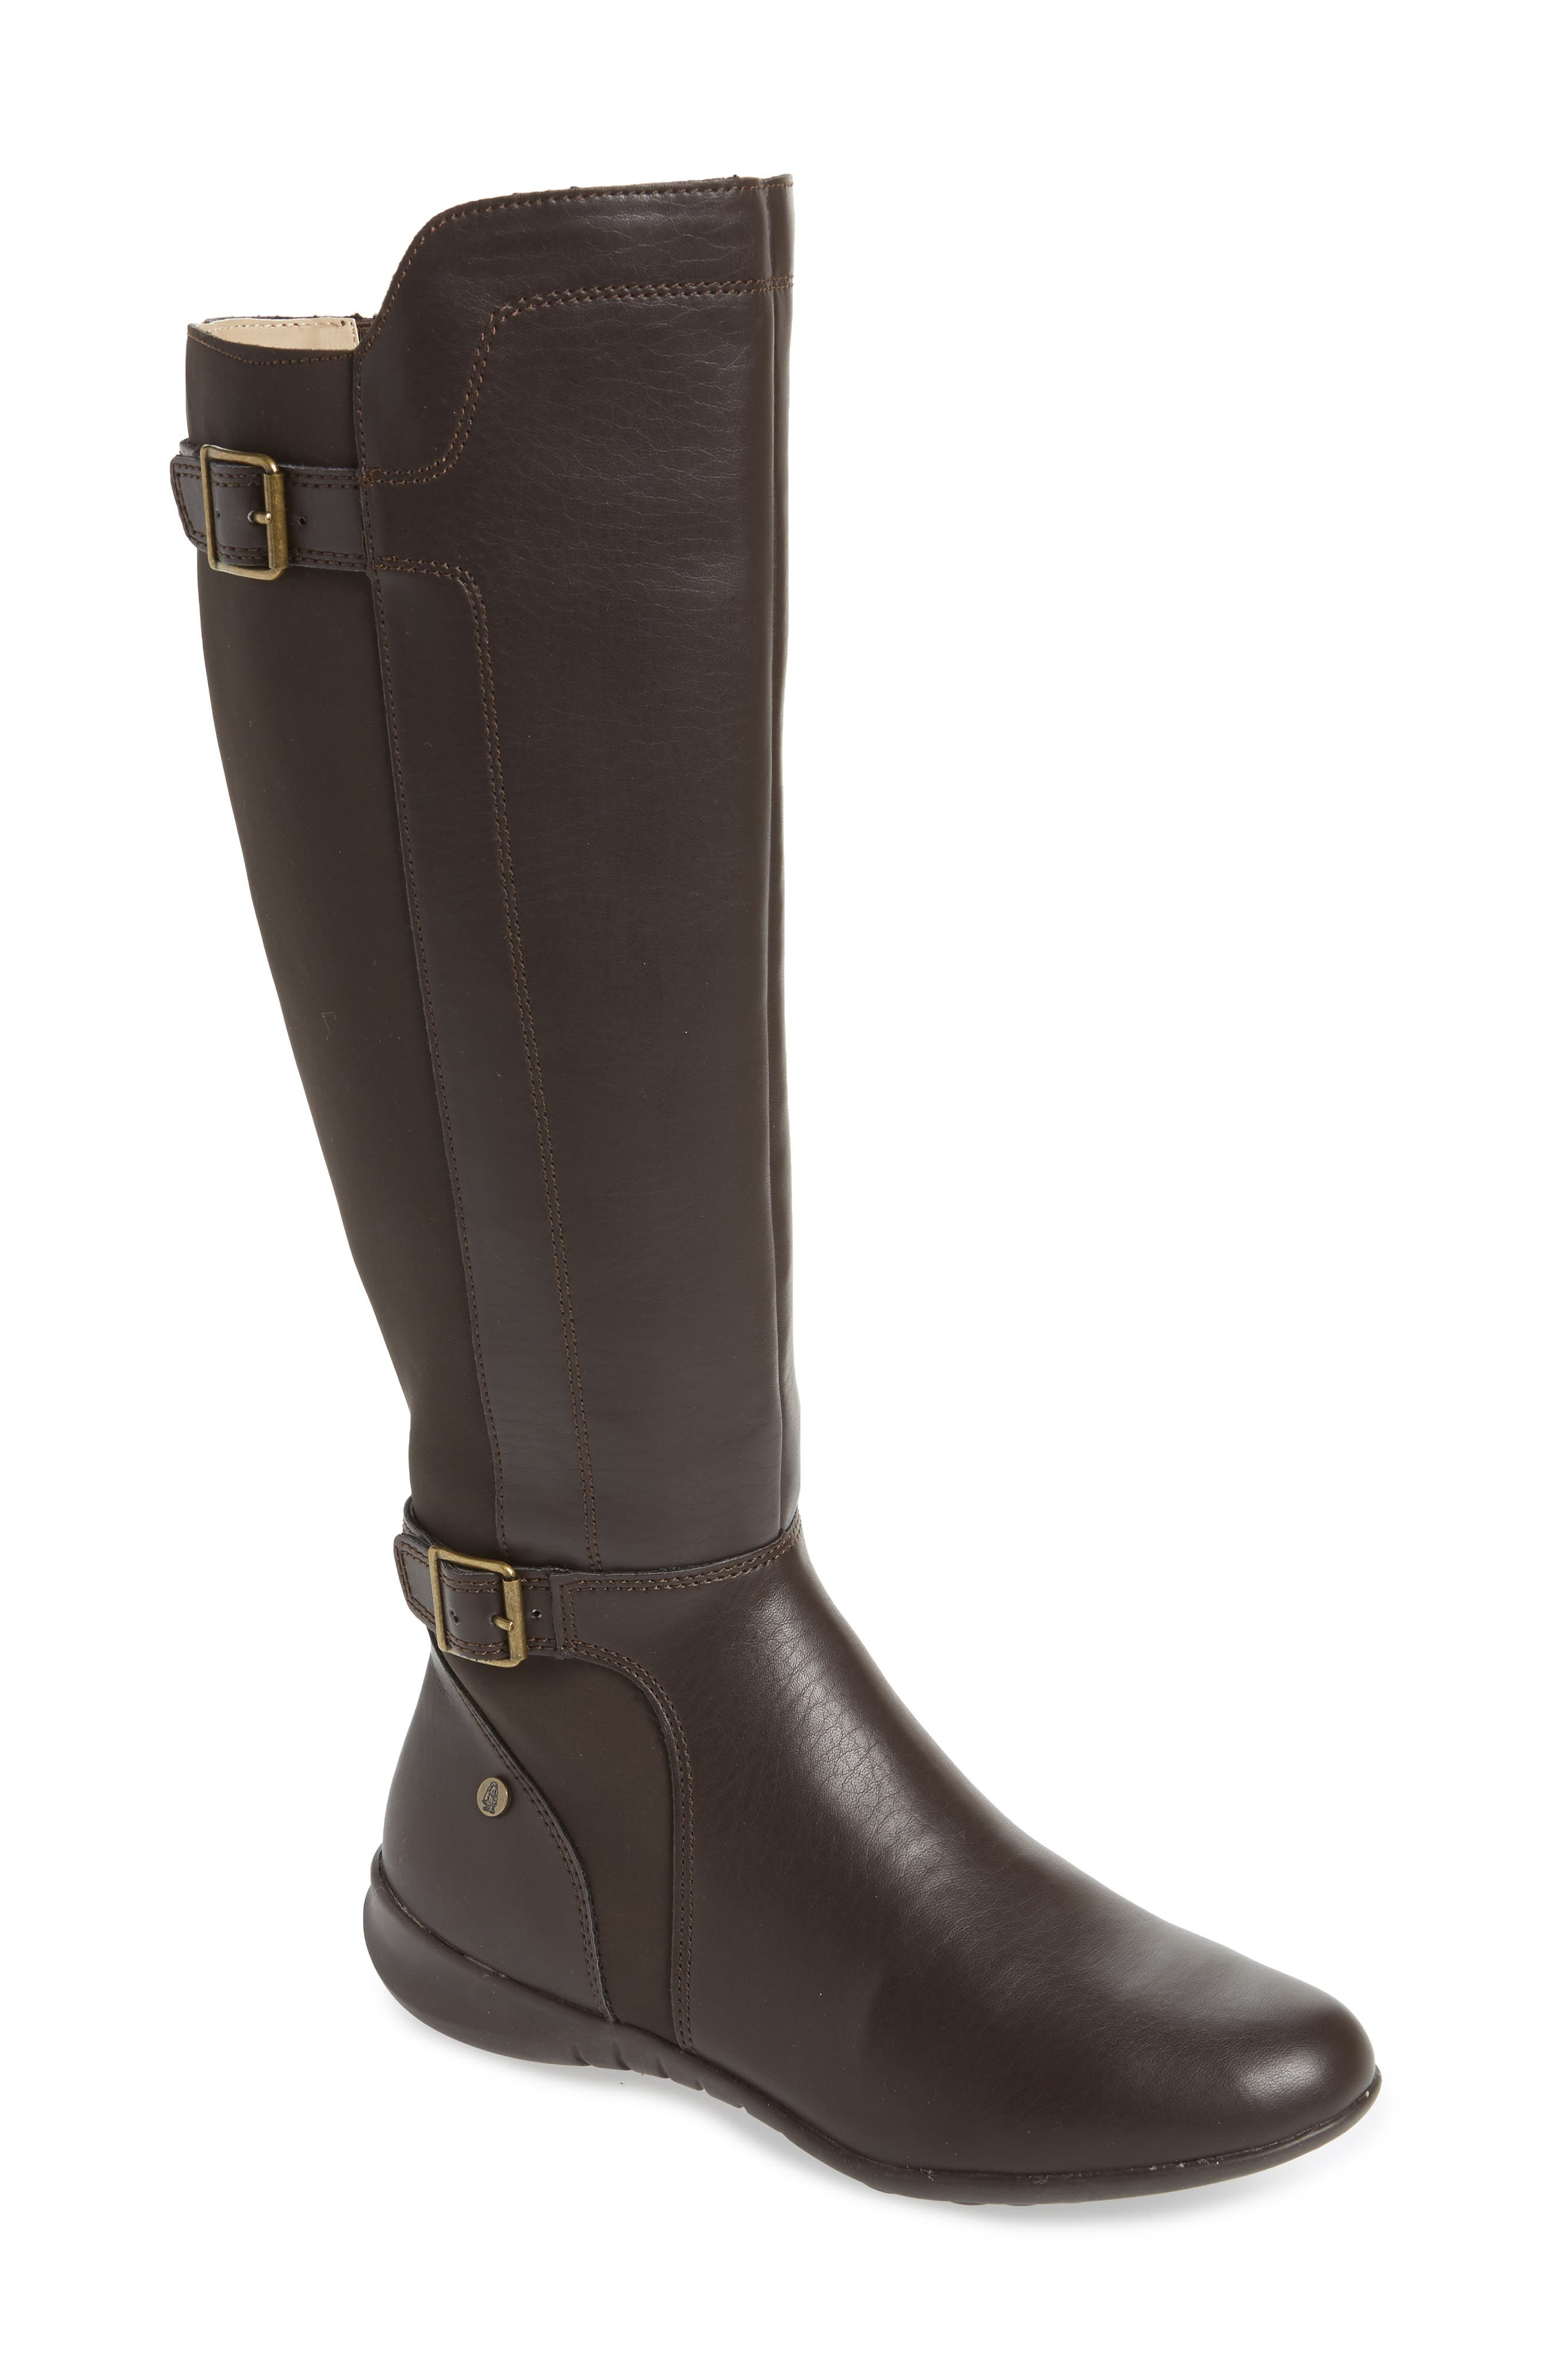 HUSH PUPPIES<SUP>®</SUP>, Bria Knee High Boot, Main thumbnail 1, color, DARK BROWN FAUX LEATHER